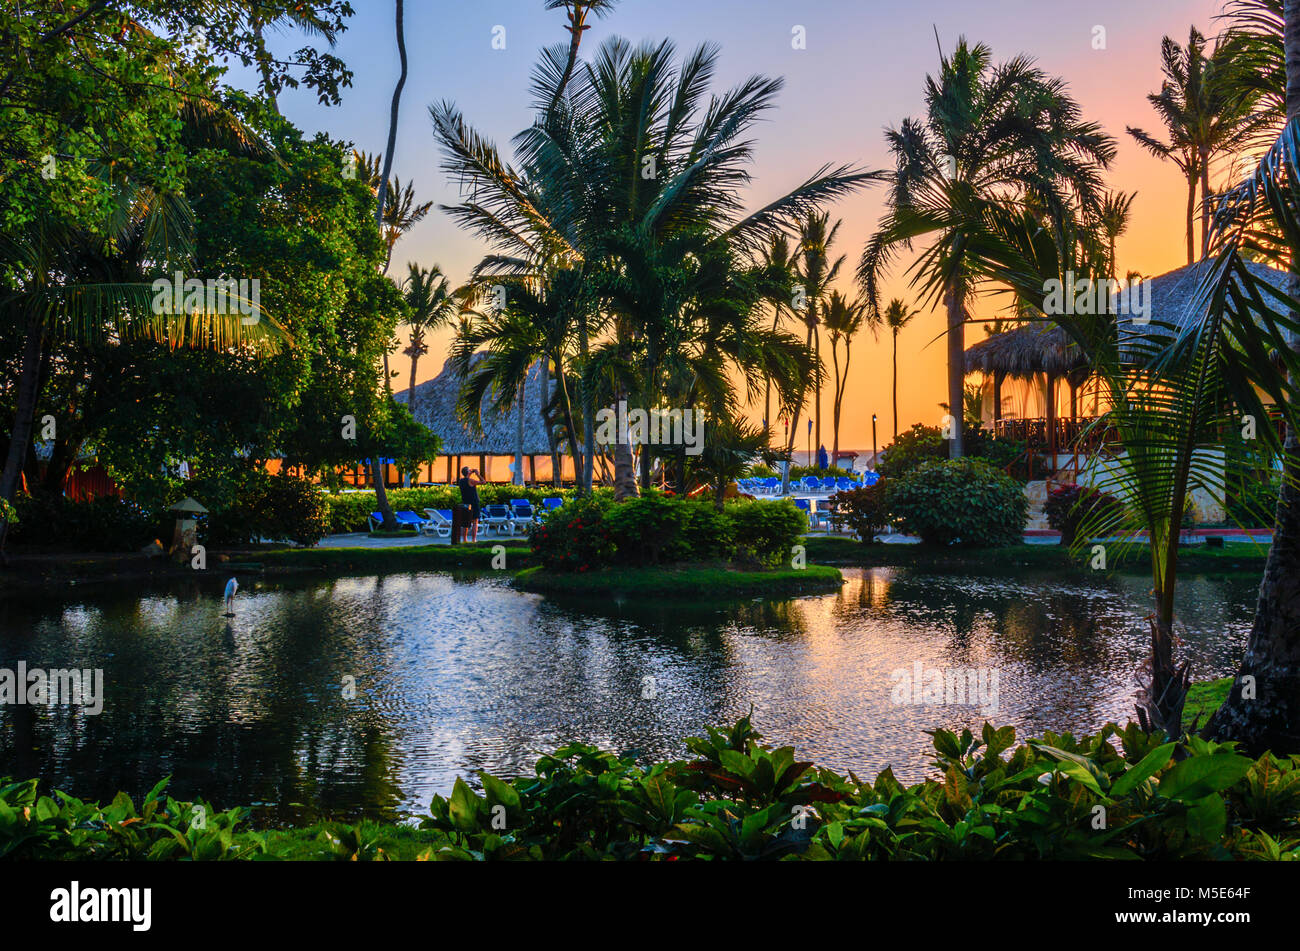 Multicolored tropical dawn with pond and palm trees, white pelican and thatched huts in the resort - Stock Image